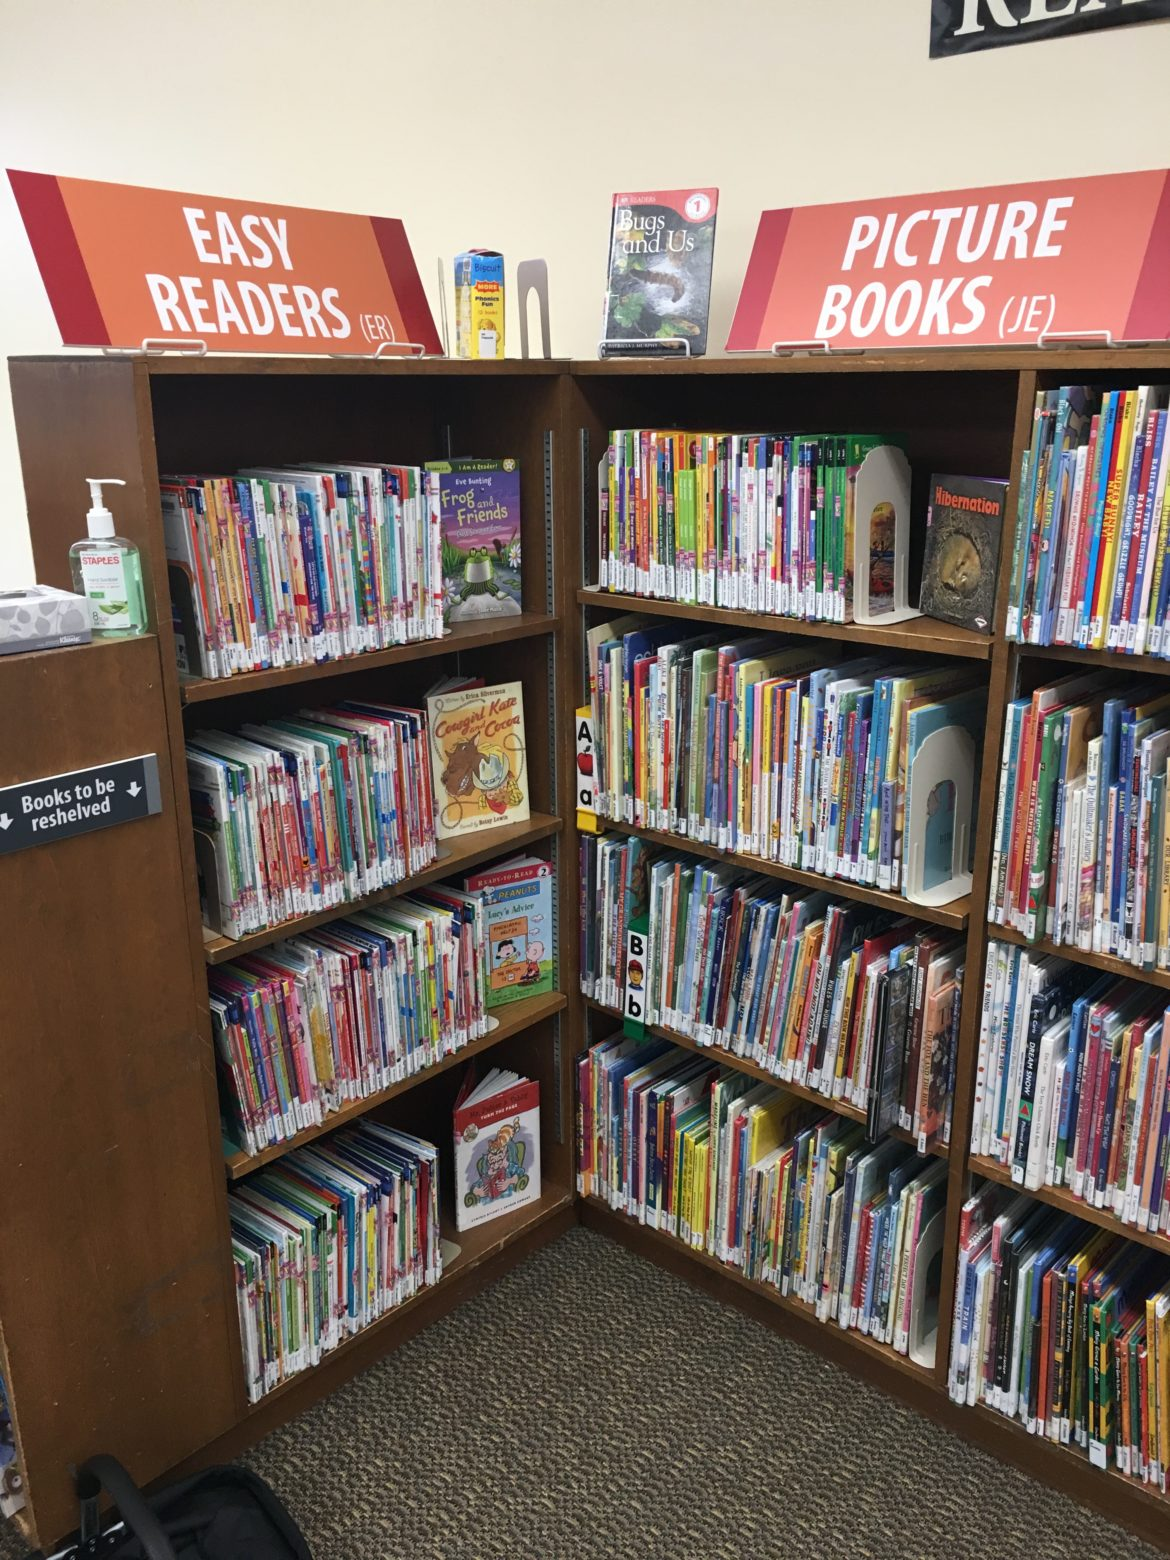 Children can choose from a wide variety of books in Masons Kids' Corner.